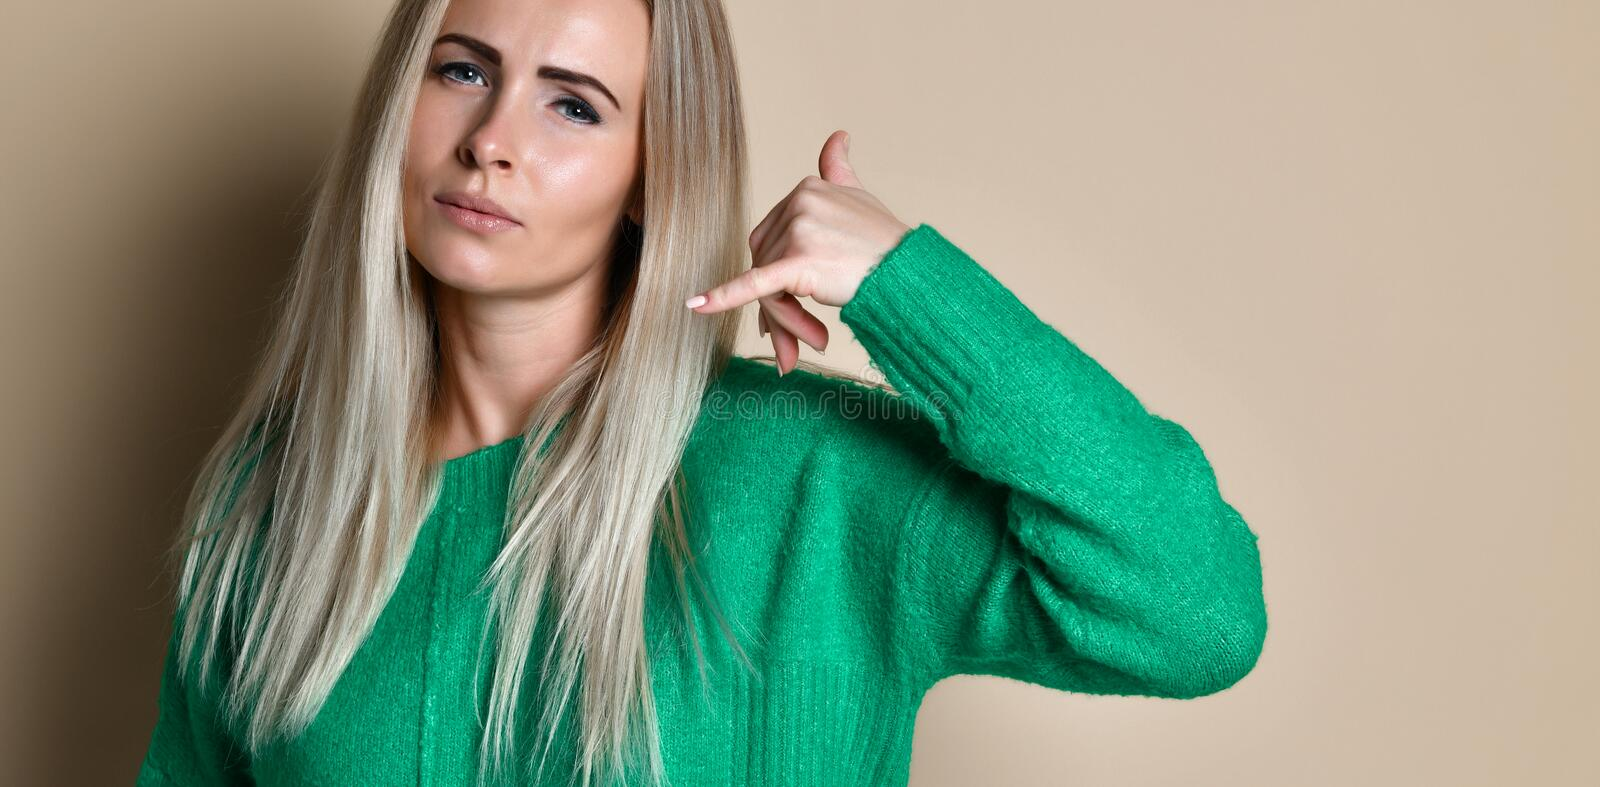 Woman in green sweater doing phone gesture like says: call me back with hand and fingers like talking on the telephone royalty free stock images